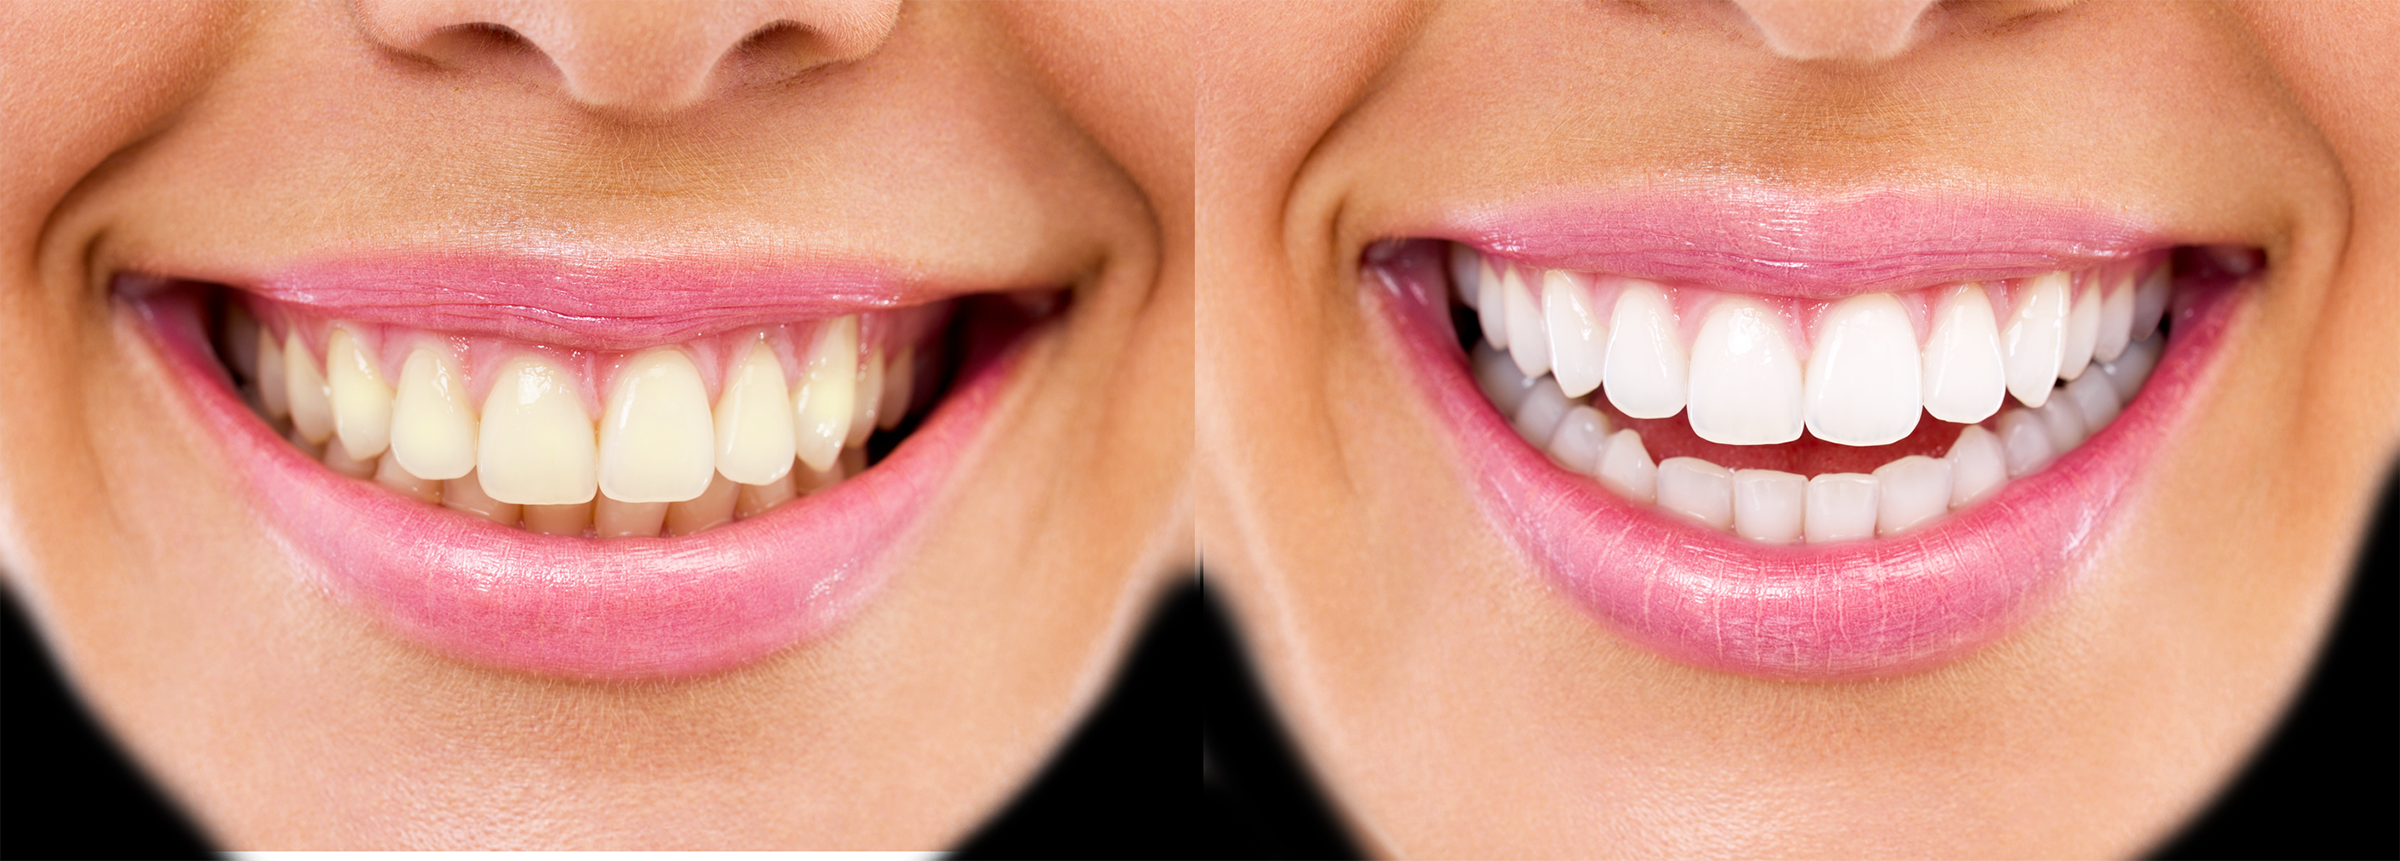 Long Island teeth whitening before and after